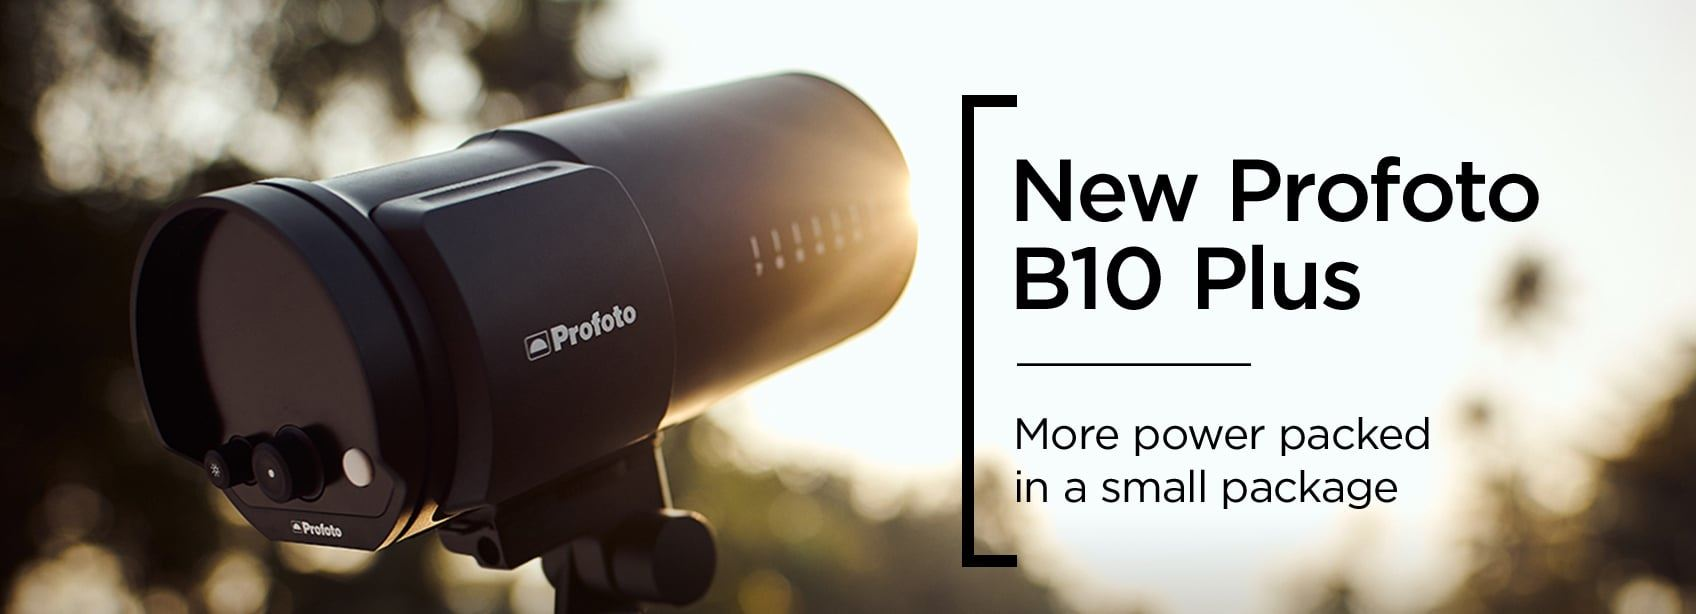 New Profoto B10 Plus